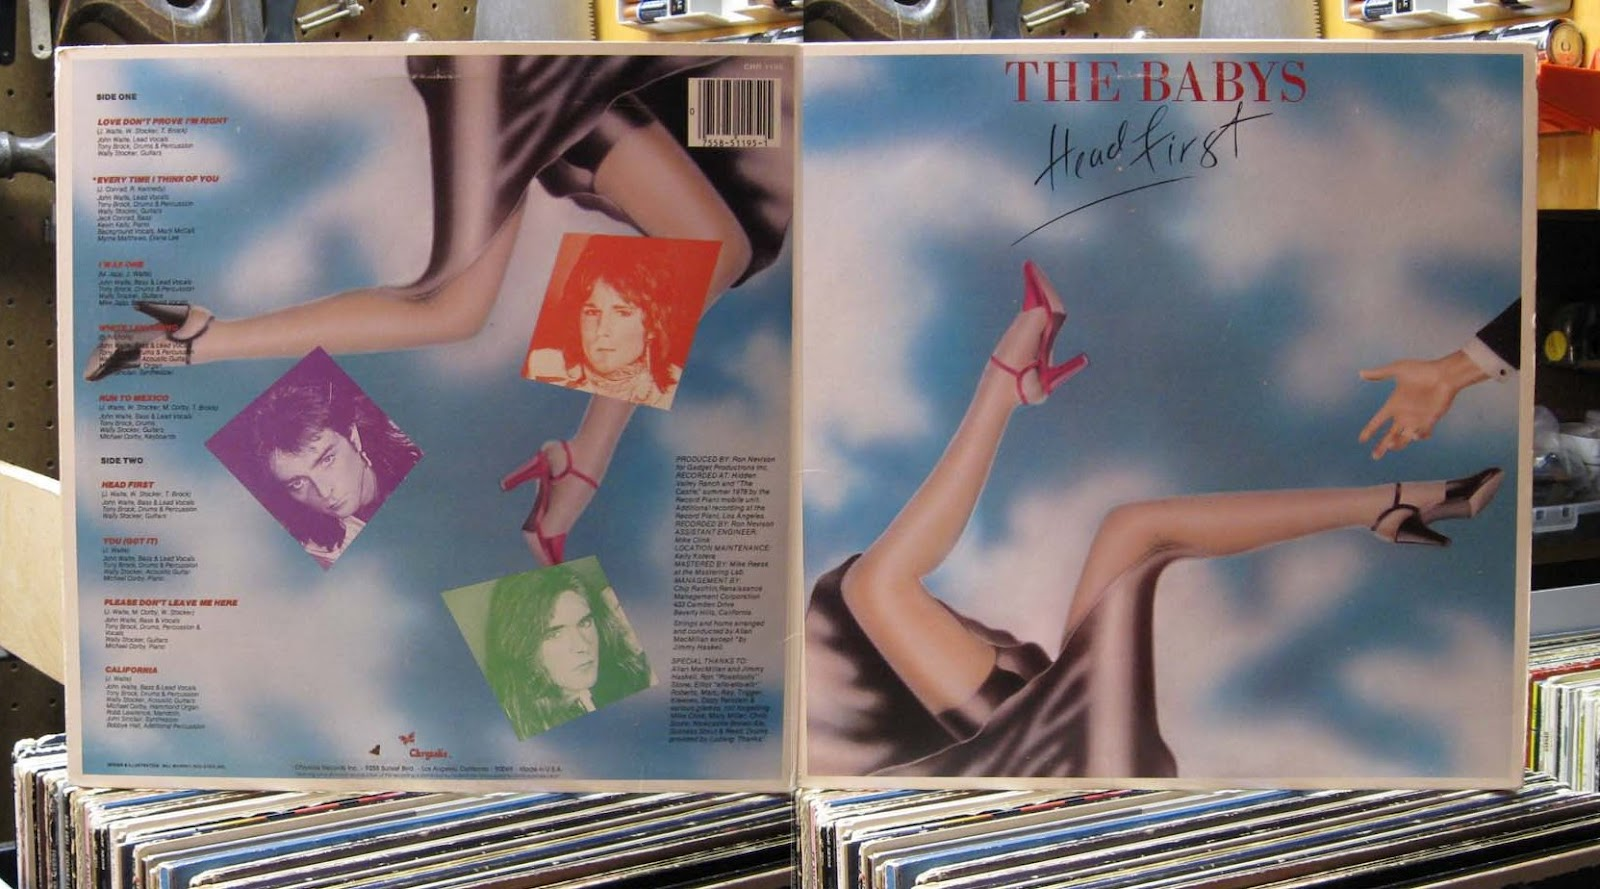 Curtis Collects Vinyl Records: The Babys - Head First   Hey